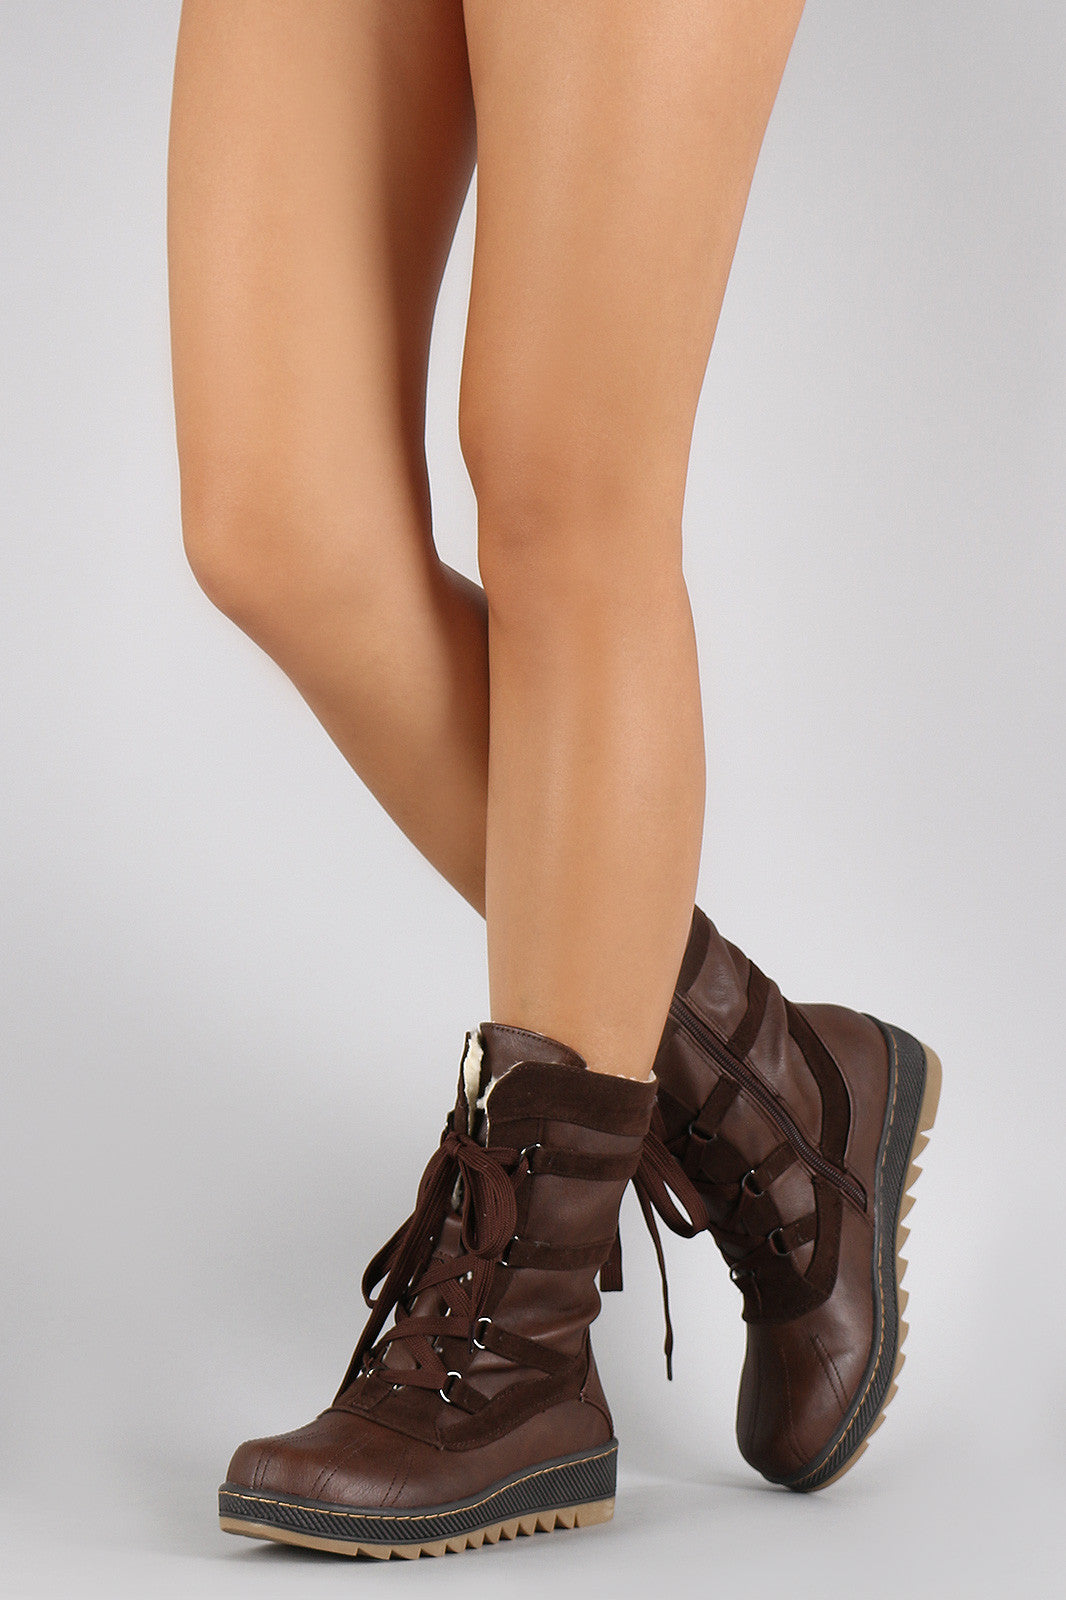 Qupid Vegan Leather-Shearling Snow Lace Up Boots - Thick 'N' Curvy Shop - 1